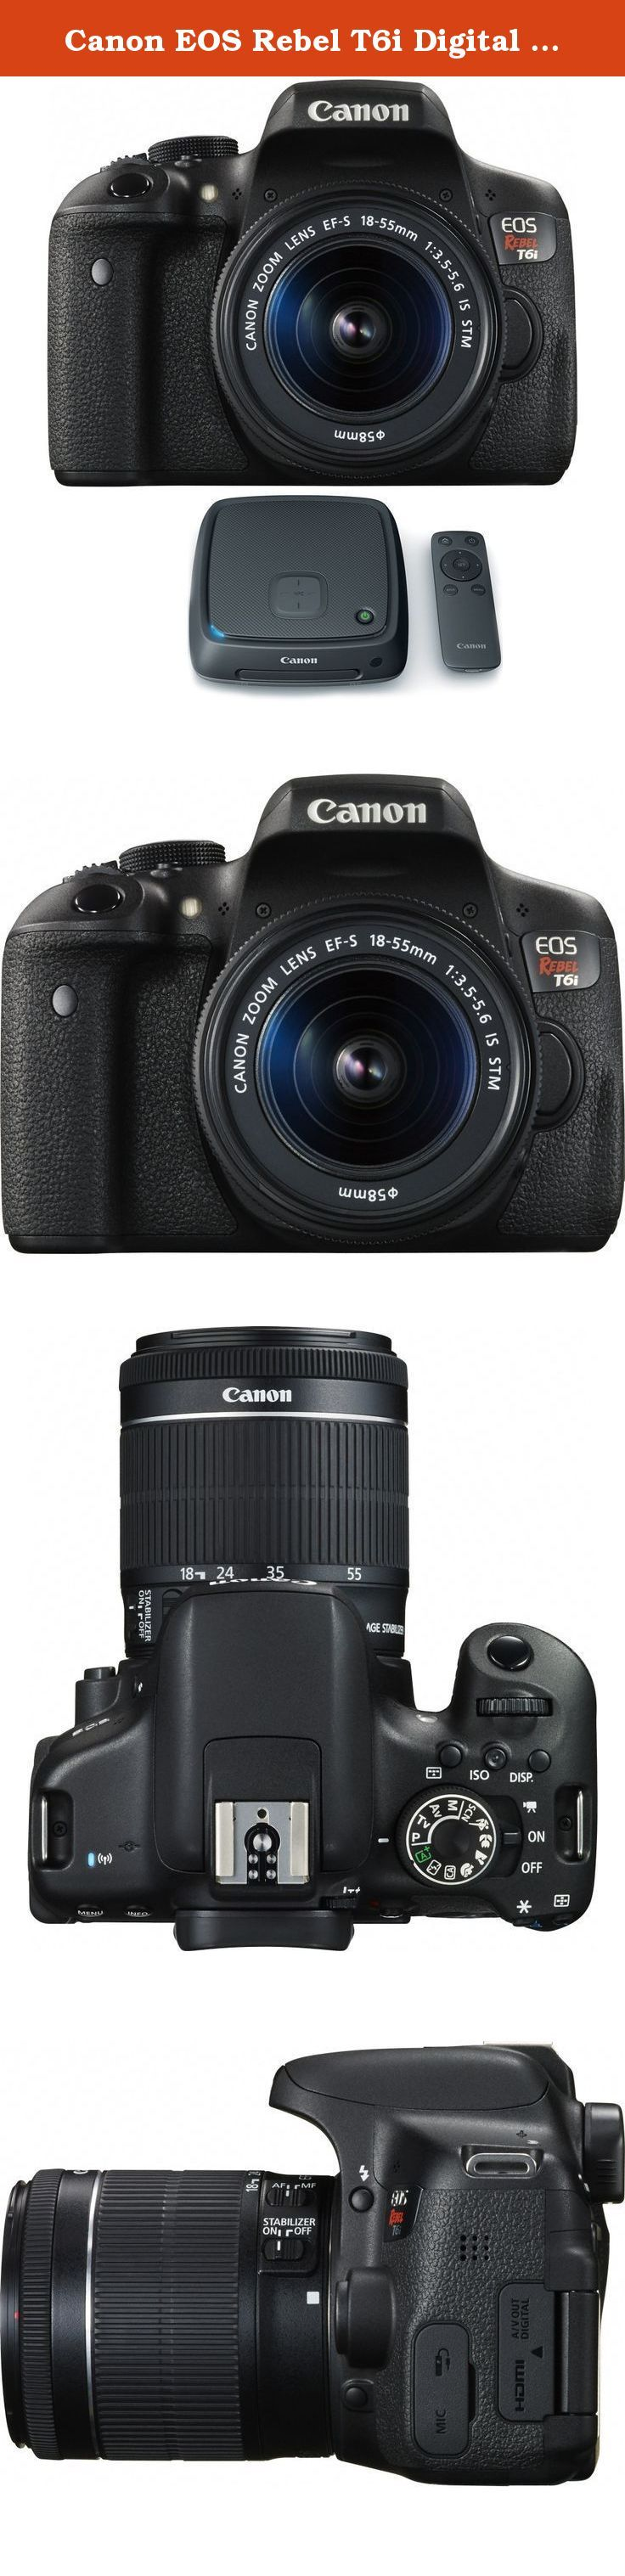 Canon EOS Rebel T6i Digital SLR Camera w/ EF-S 18-55mm Lens + CS100 1TB Connect Station Storage Hub Bundle. Bundle Includes Canon EOS Rebel T6i Camera Body Canon EF-S 18-55mm IS STM Lens Canon Connect Station CS100 1TB Photo and Video Storage Hub with NFC and Wi-Fi Wireless Takes EOS Rebel to The Next Level For gorgeous, high-quality photos and videos that are easy to share, look to the Canon EOS Rebel T6i camera. The EOS Rebel T6i does more, easier, making capturing photos and shooting...